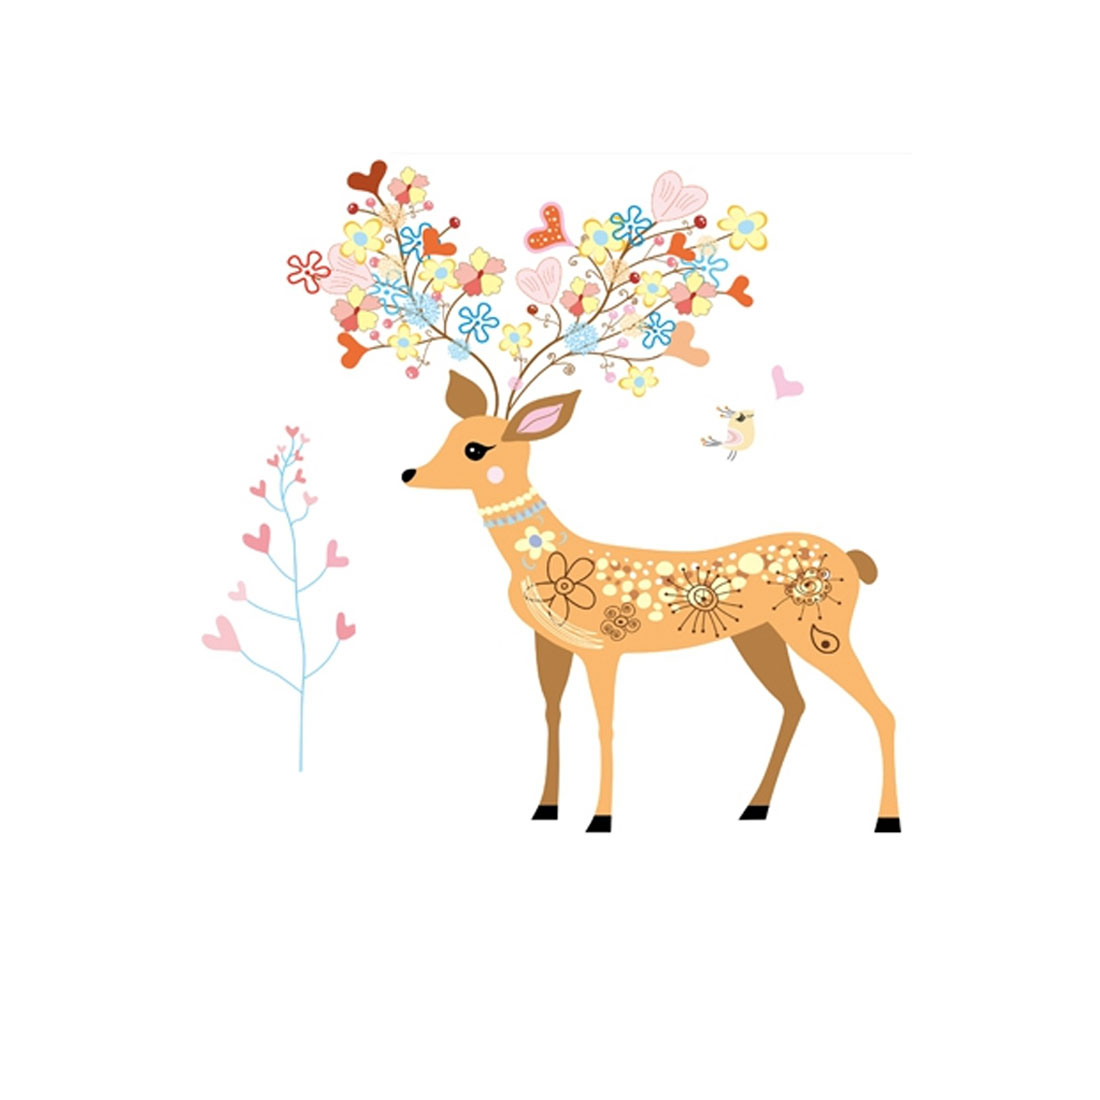 Home Bedroom PVC Sika Deer Pattern Self-adhesive Decor Ornament Wall Sticker Decal Multicolor